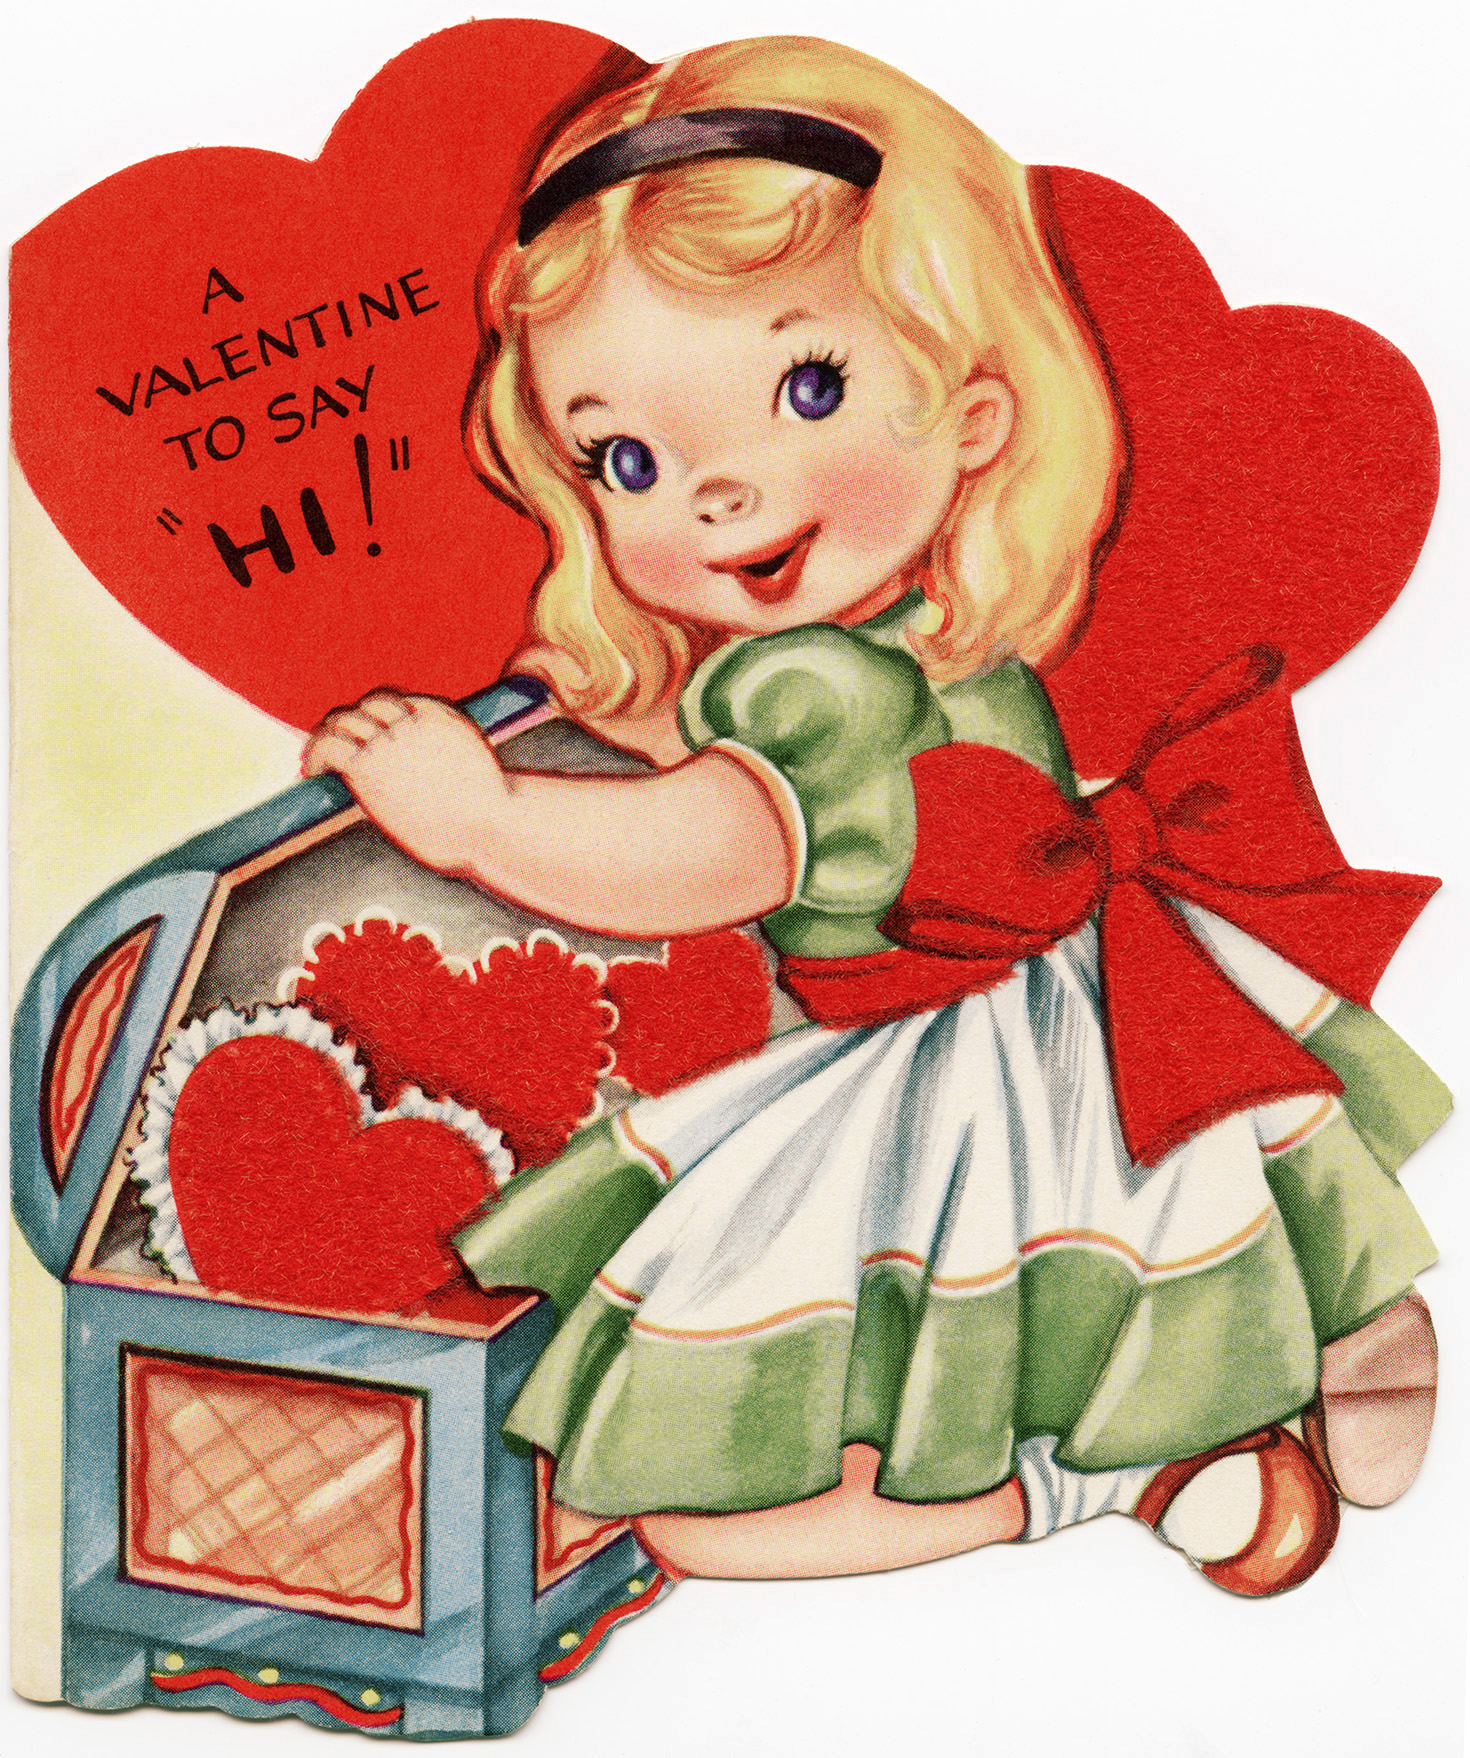 Free Vintage Image A Valentine To Say Hi! | Old Design Shop Blog